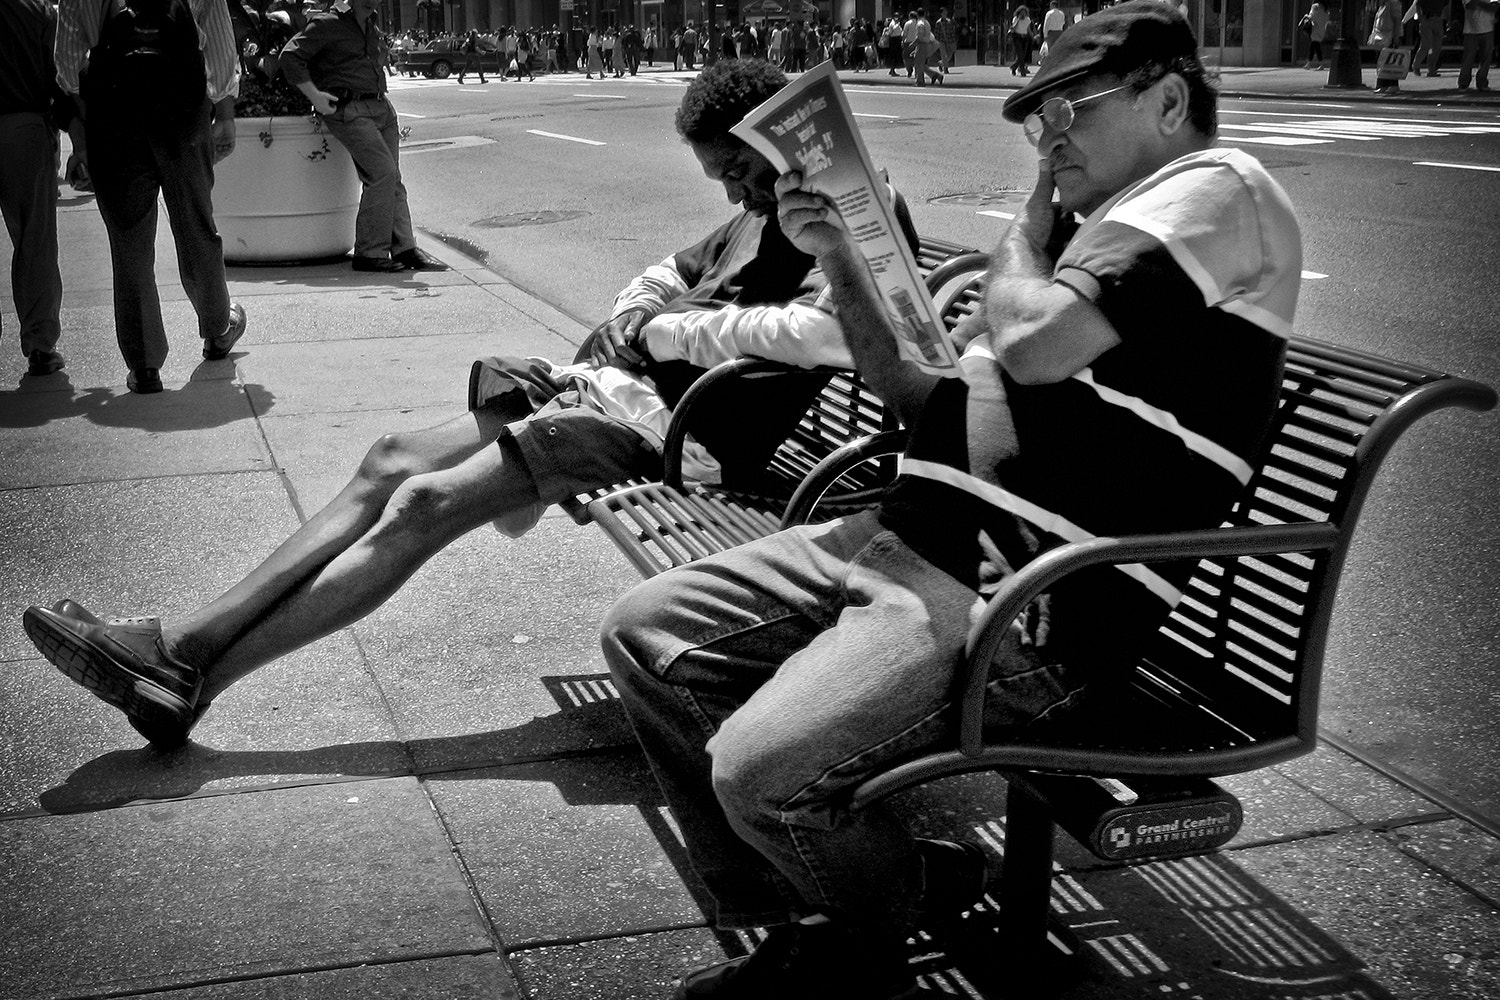 Photograph Benchwarmers by JoeWig on 500px